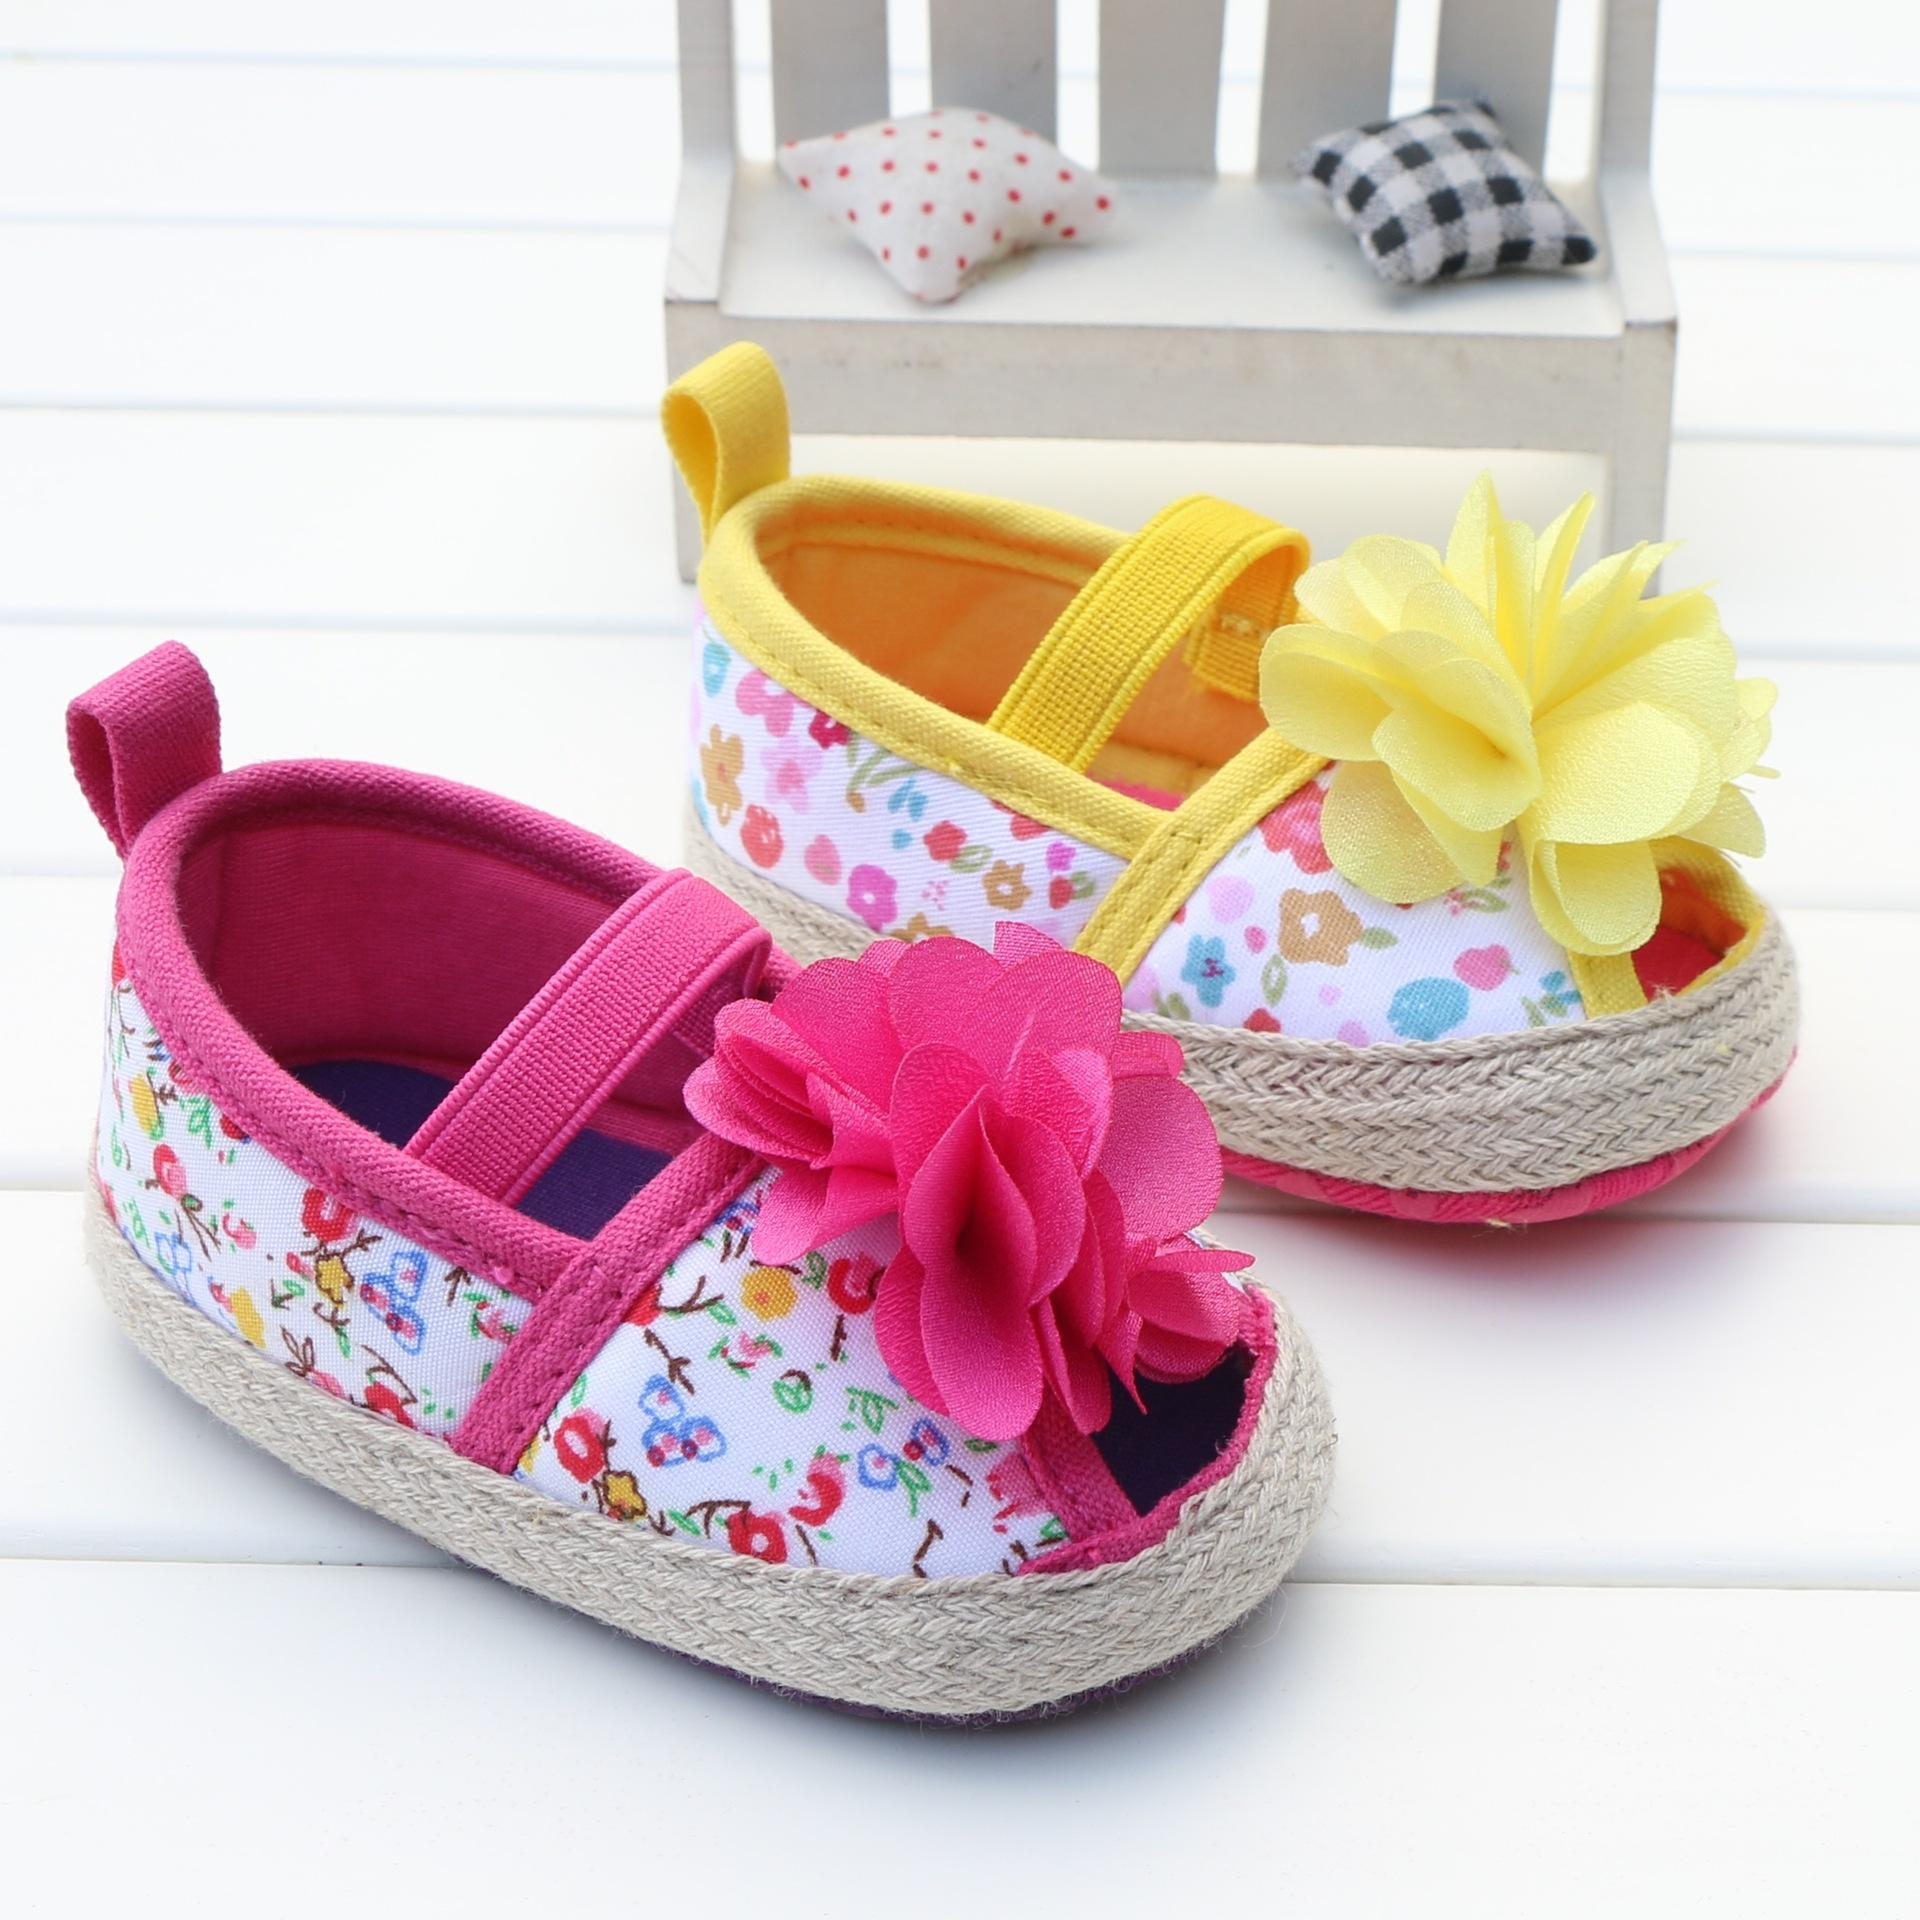 2018 Cute Flower Open Toe Baby Girls Shoes Summer Spring Soft Indoor